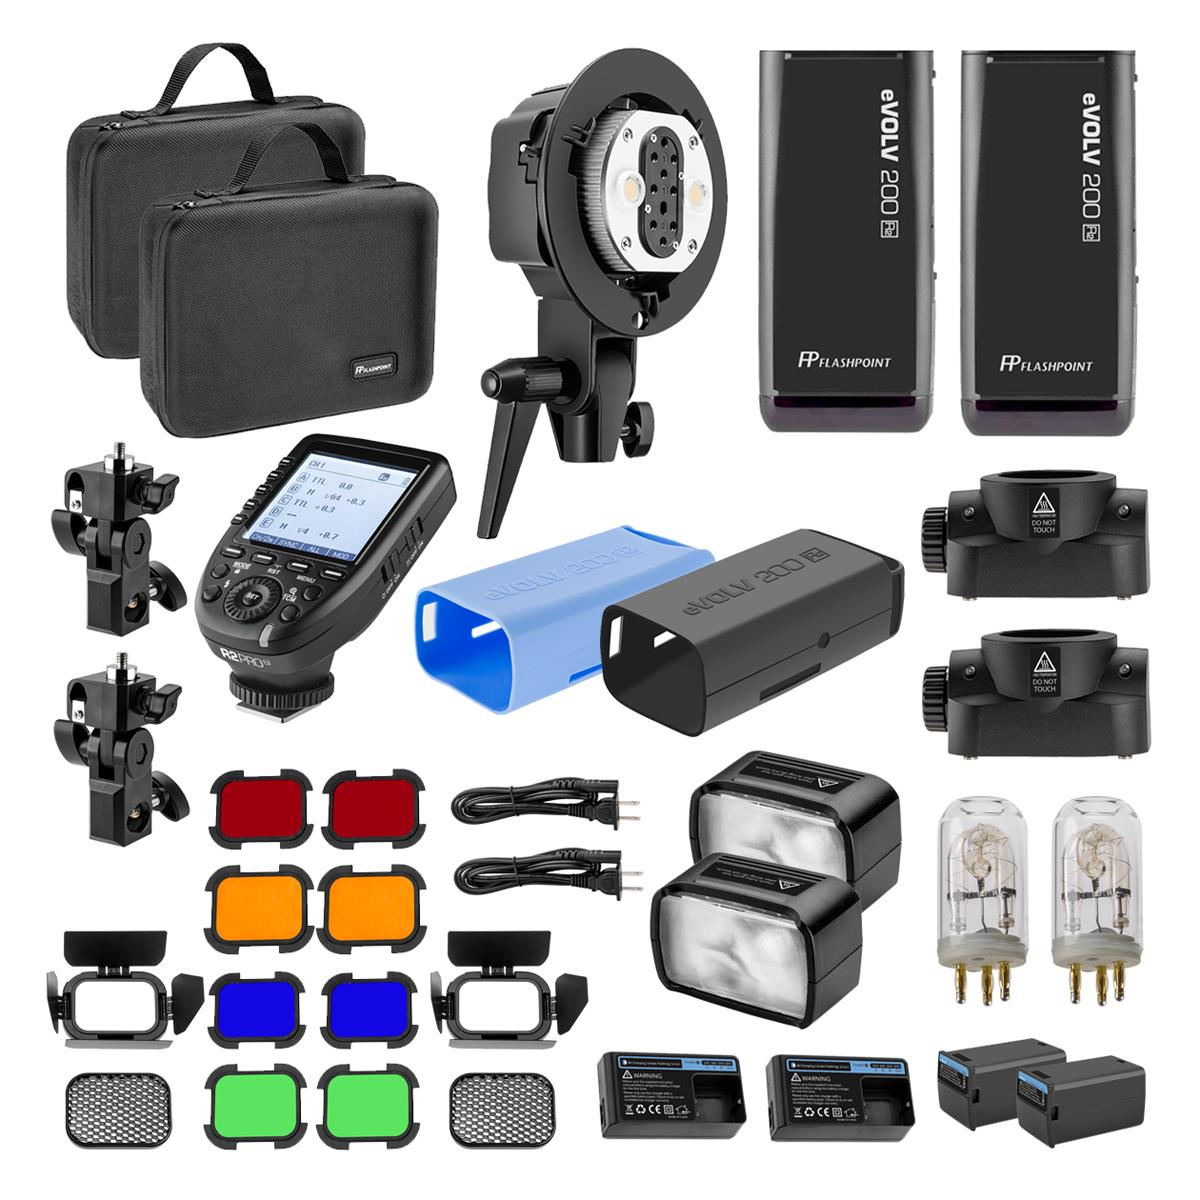 Flashpoint eVOLV double strobe kit deal! $530 for 2 eVOLV strobes, twin head adapter, R2 Pro transmitter, and more